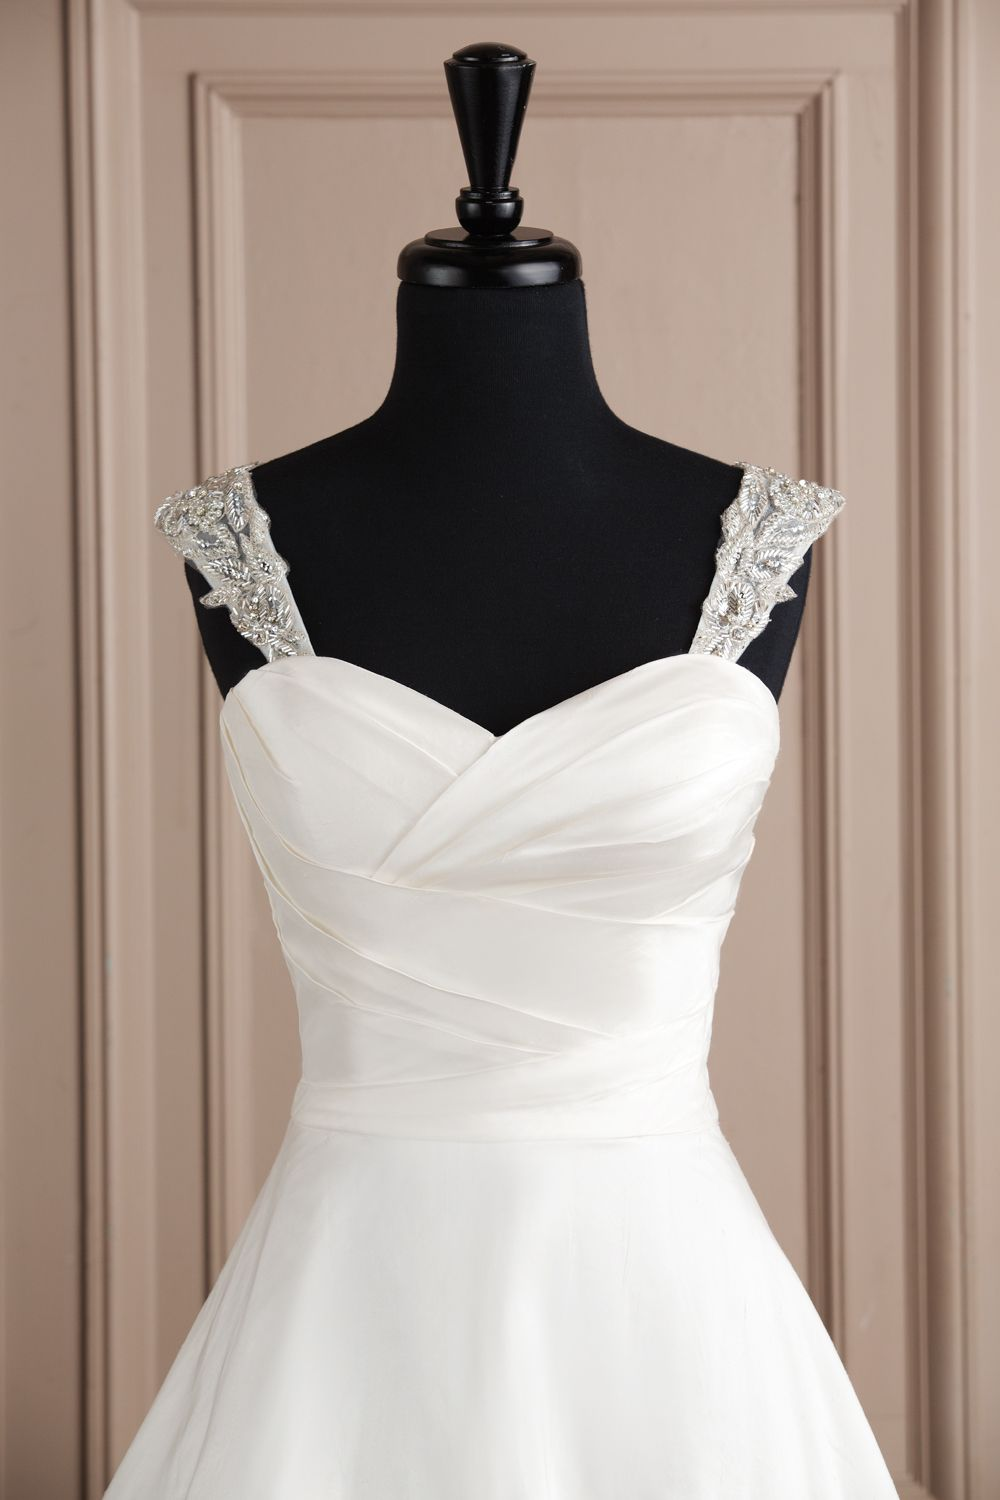 Justin Alexander accessories style A058 Tulle cap sleeves covered with beaded flowers and leaves. Very pretty.